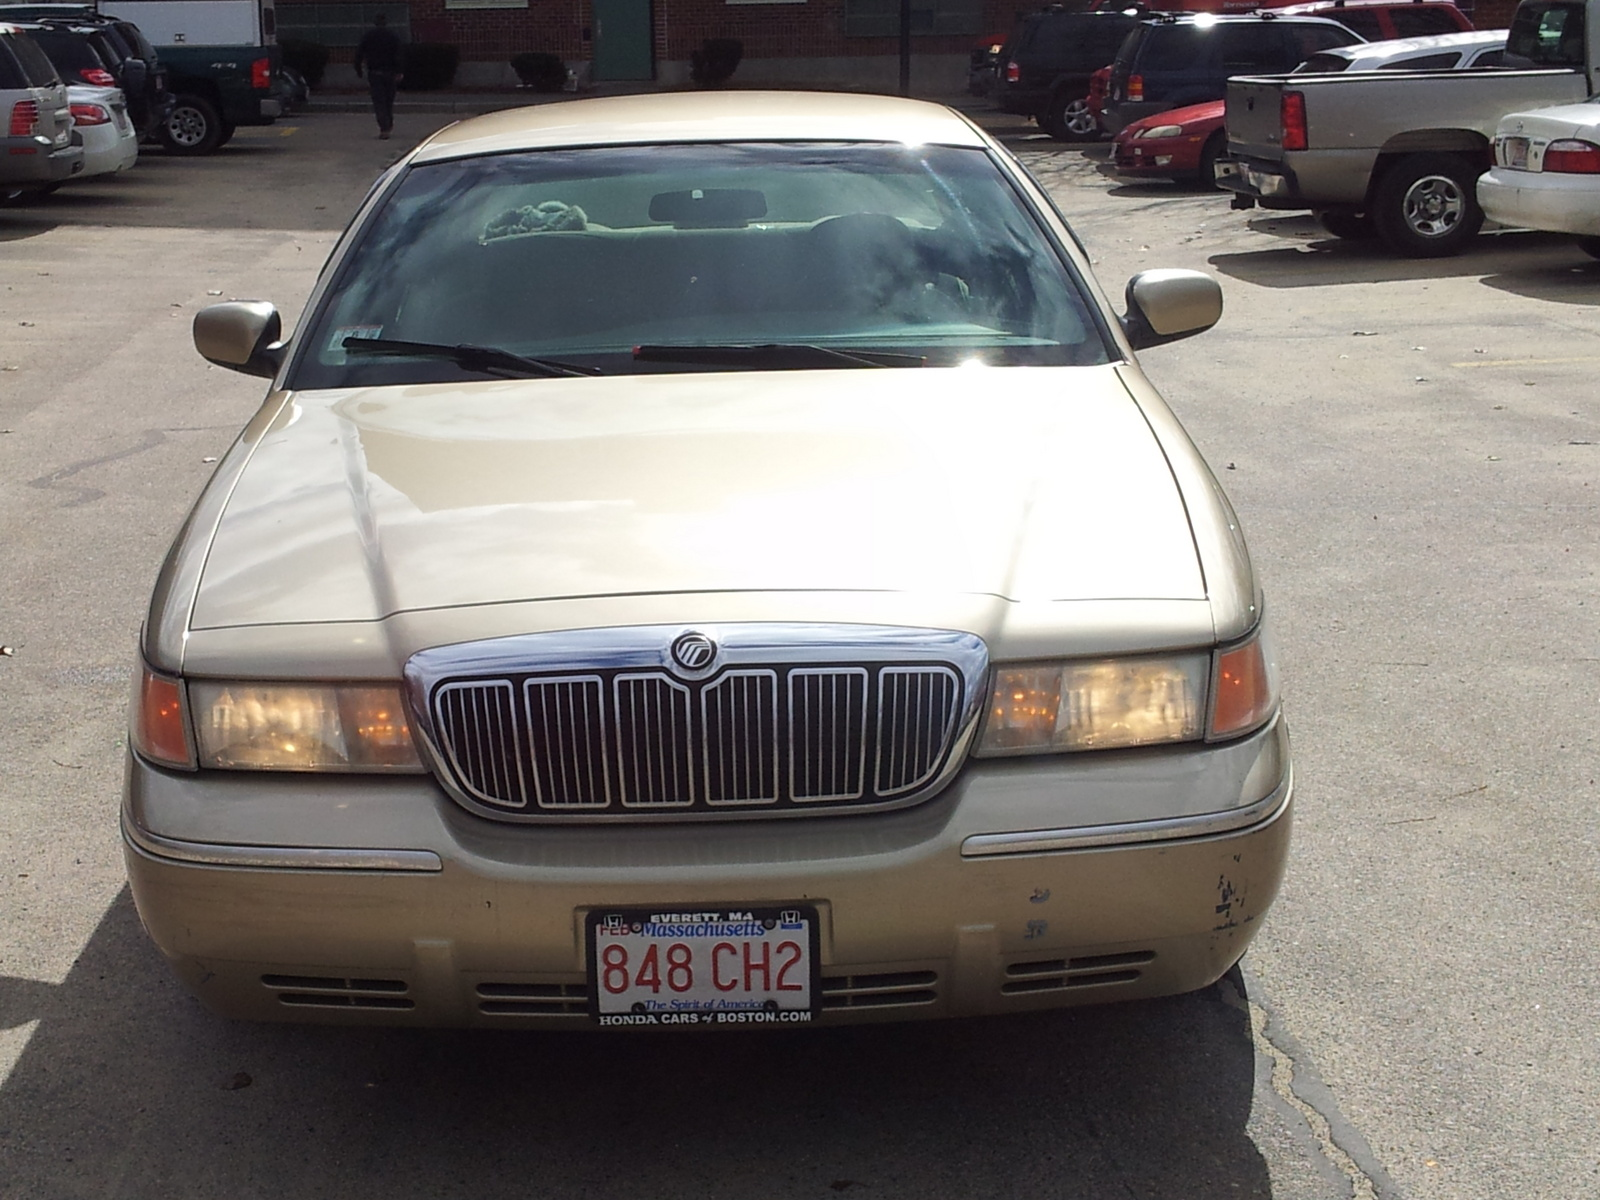 Picture of 2000 Mercury Grand Marquis GS